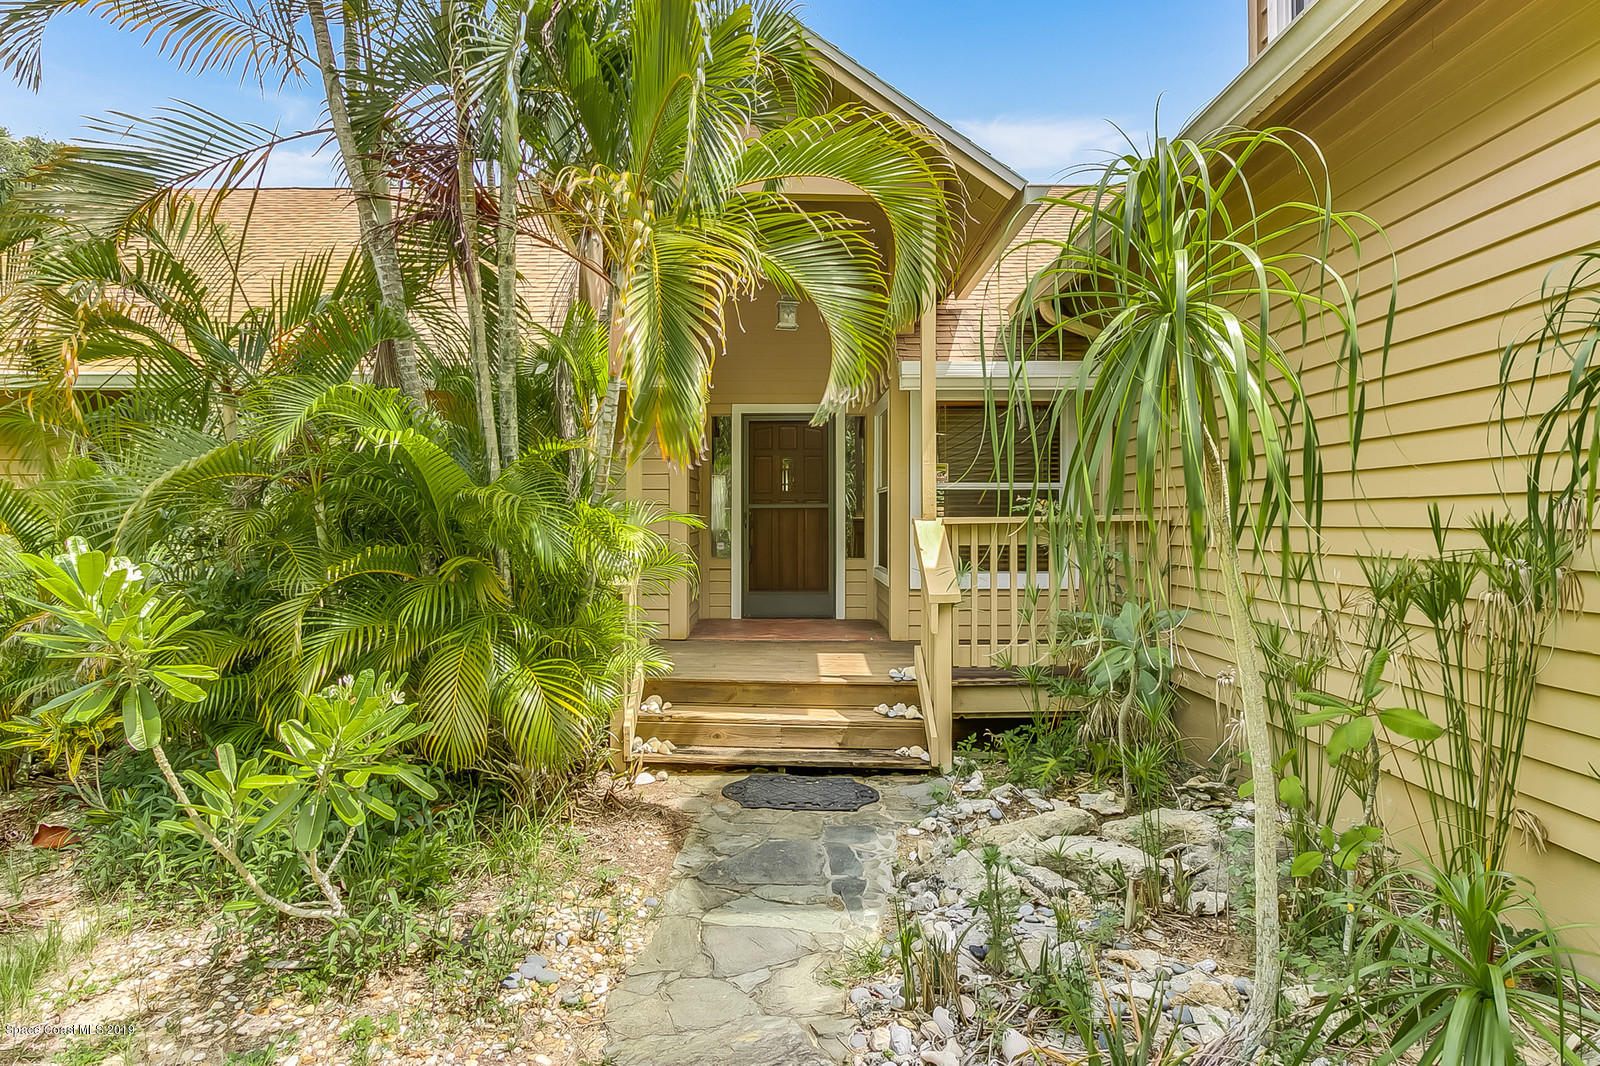 Single Family Homes for Sale at 116 Seagrape Melbourne Beach, Florida 32951 United States